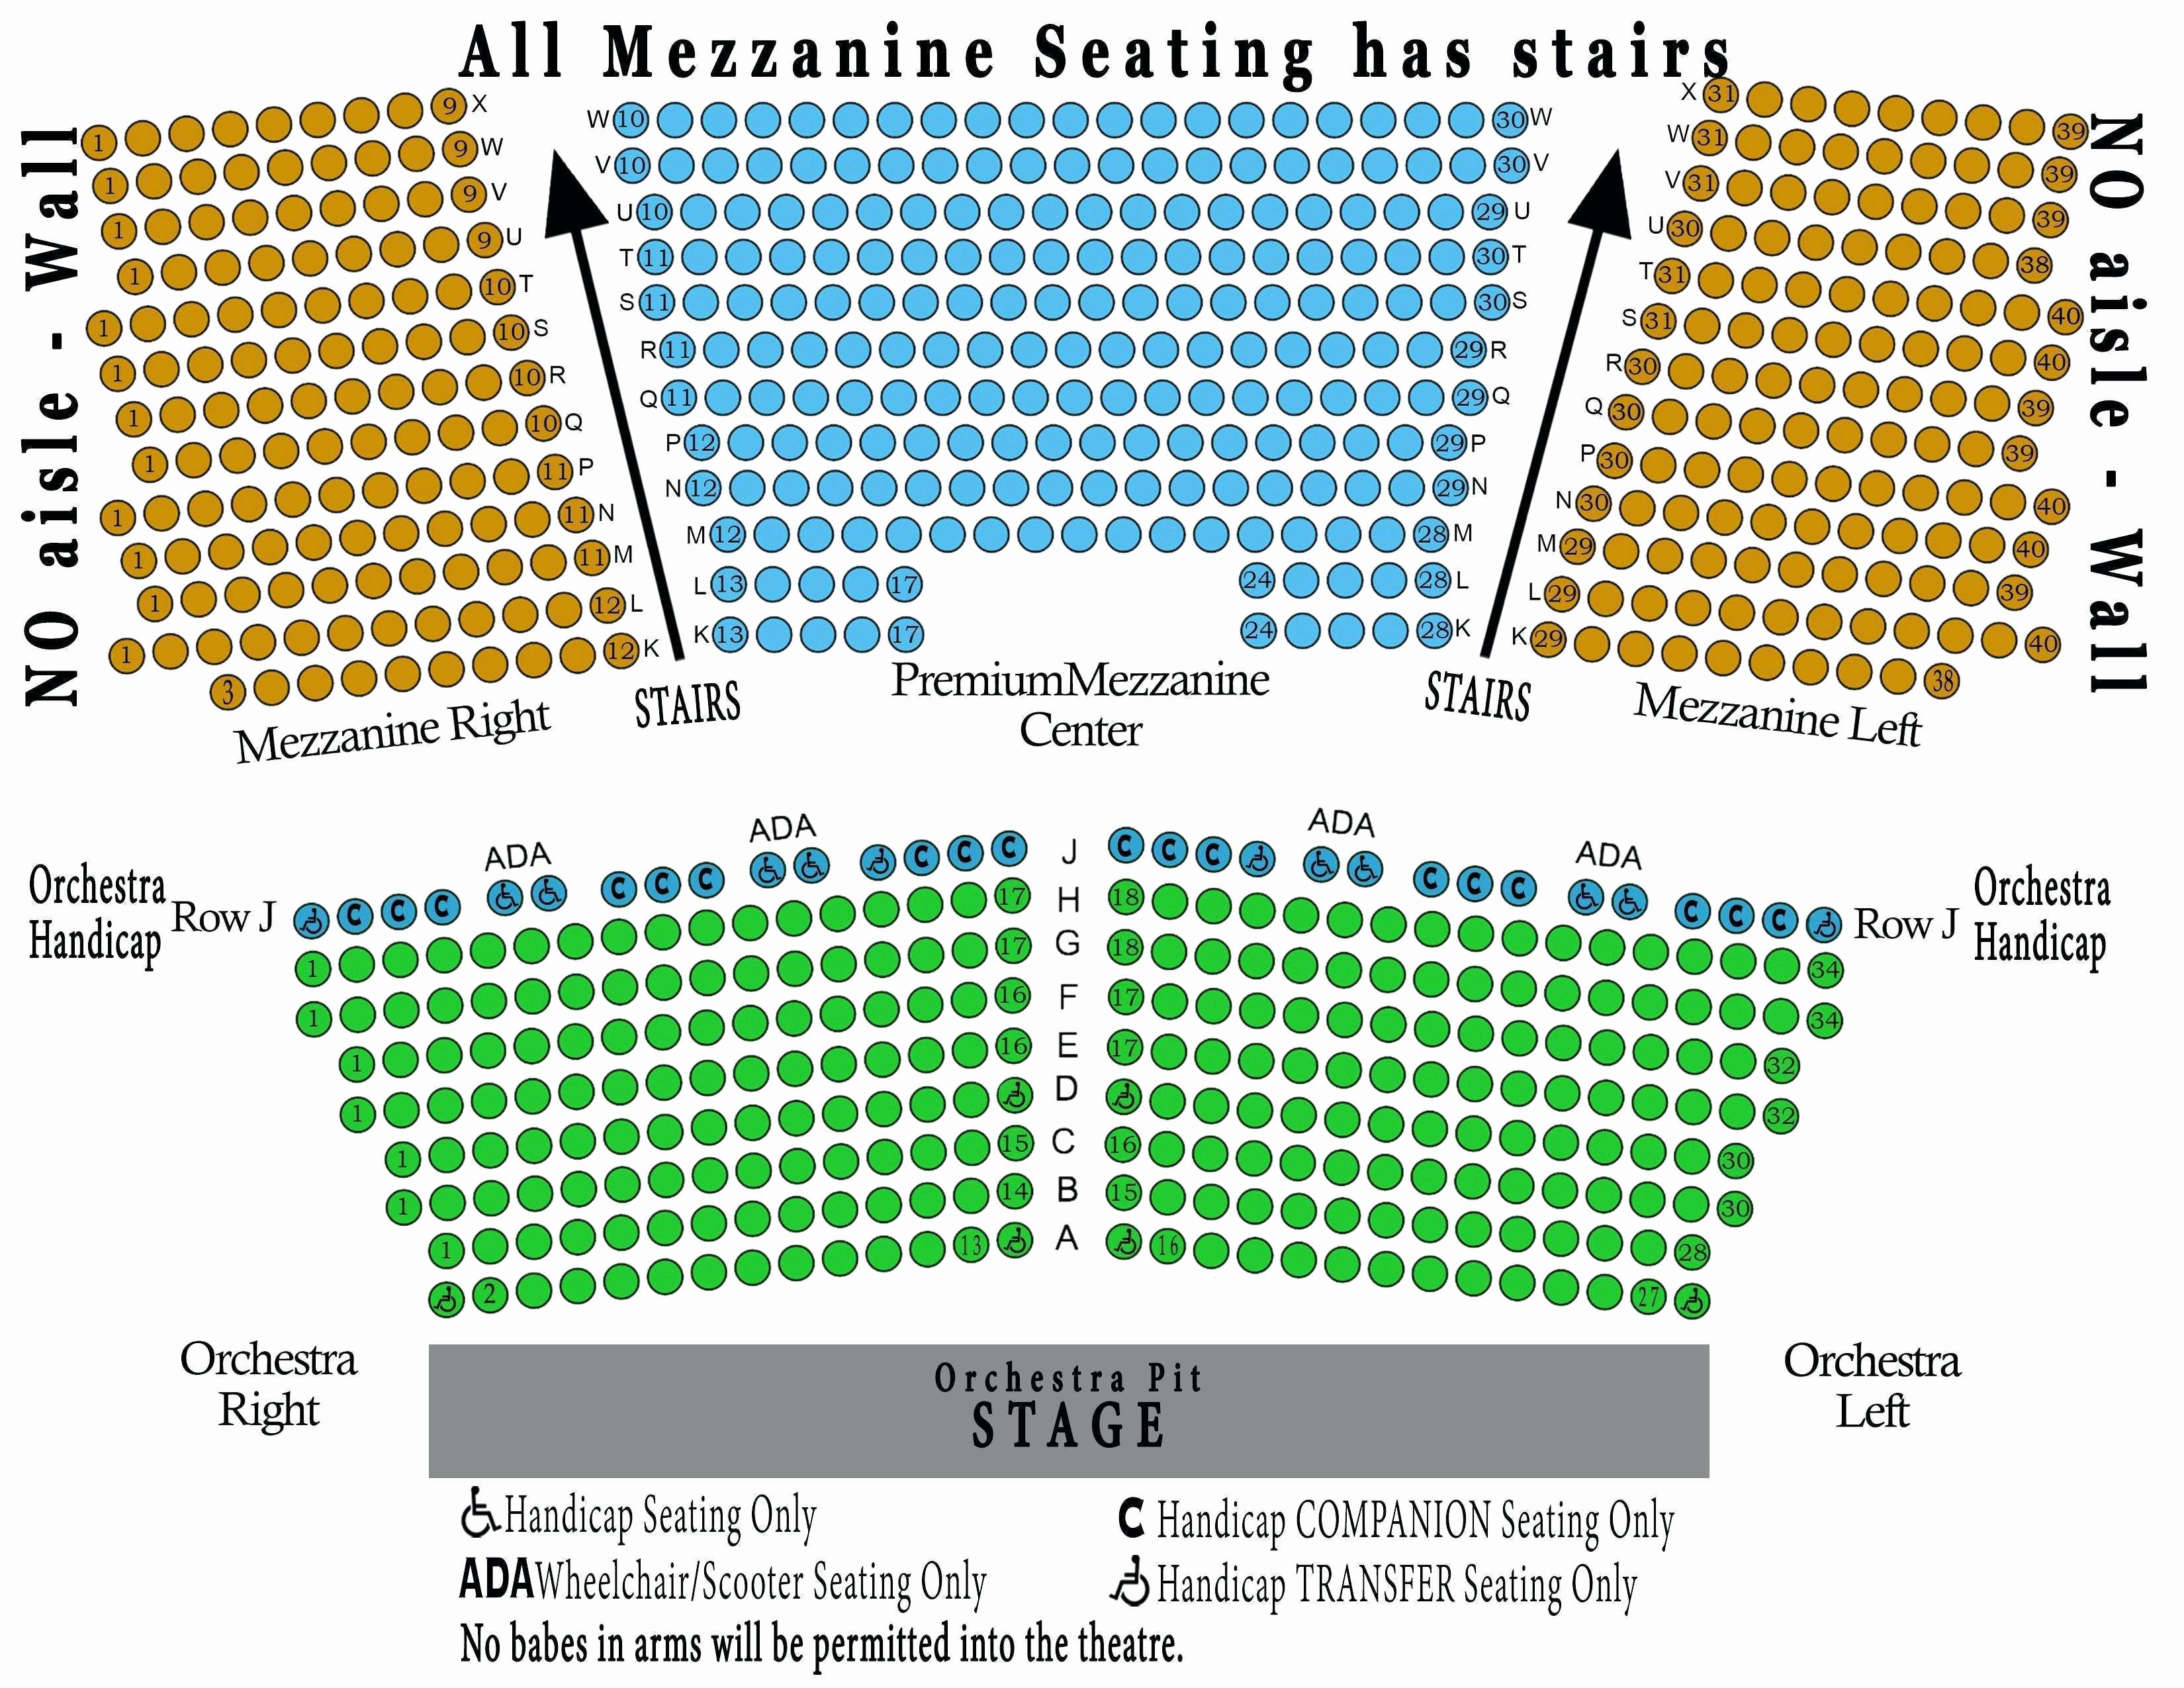 Auditorium Seating Chart Template Best Of 20 New Royal Opera House Seating Plan View